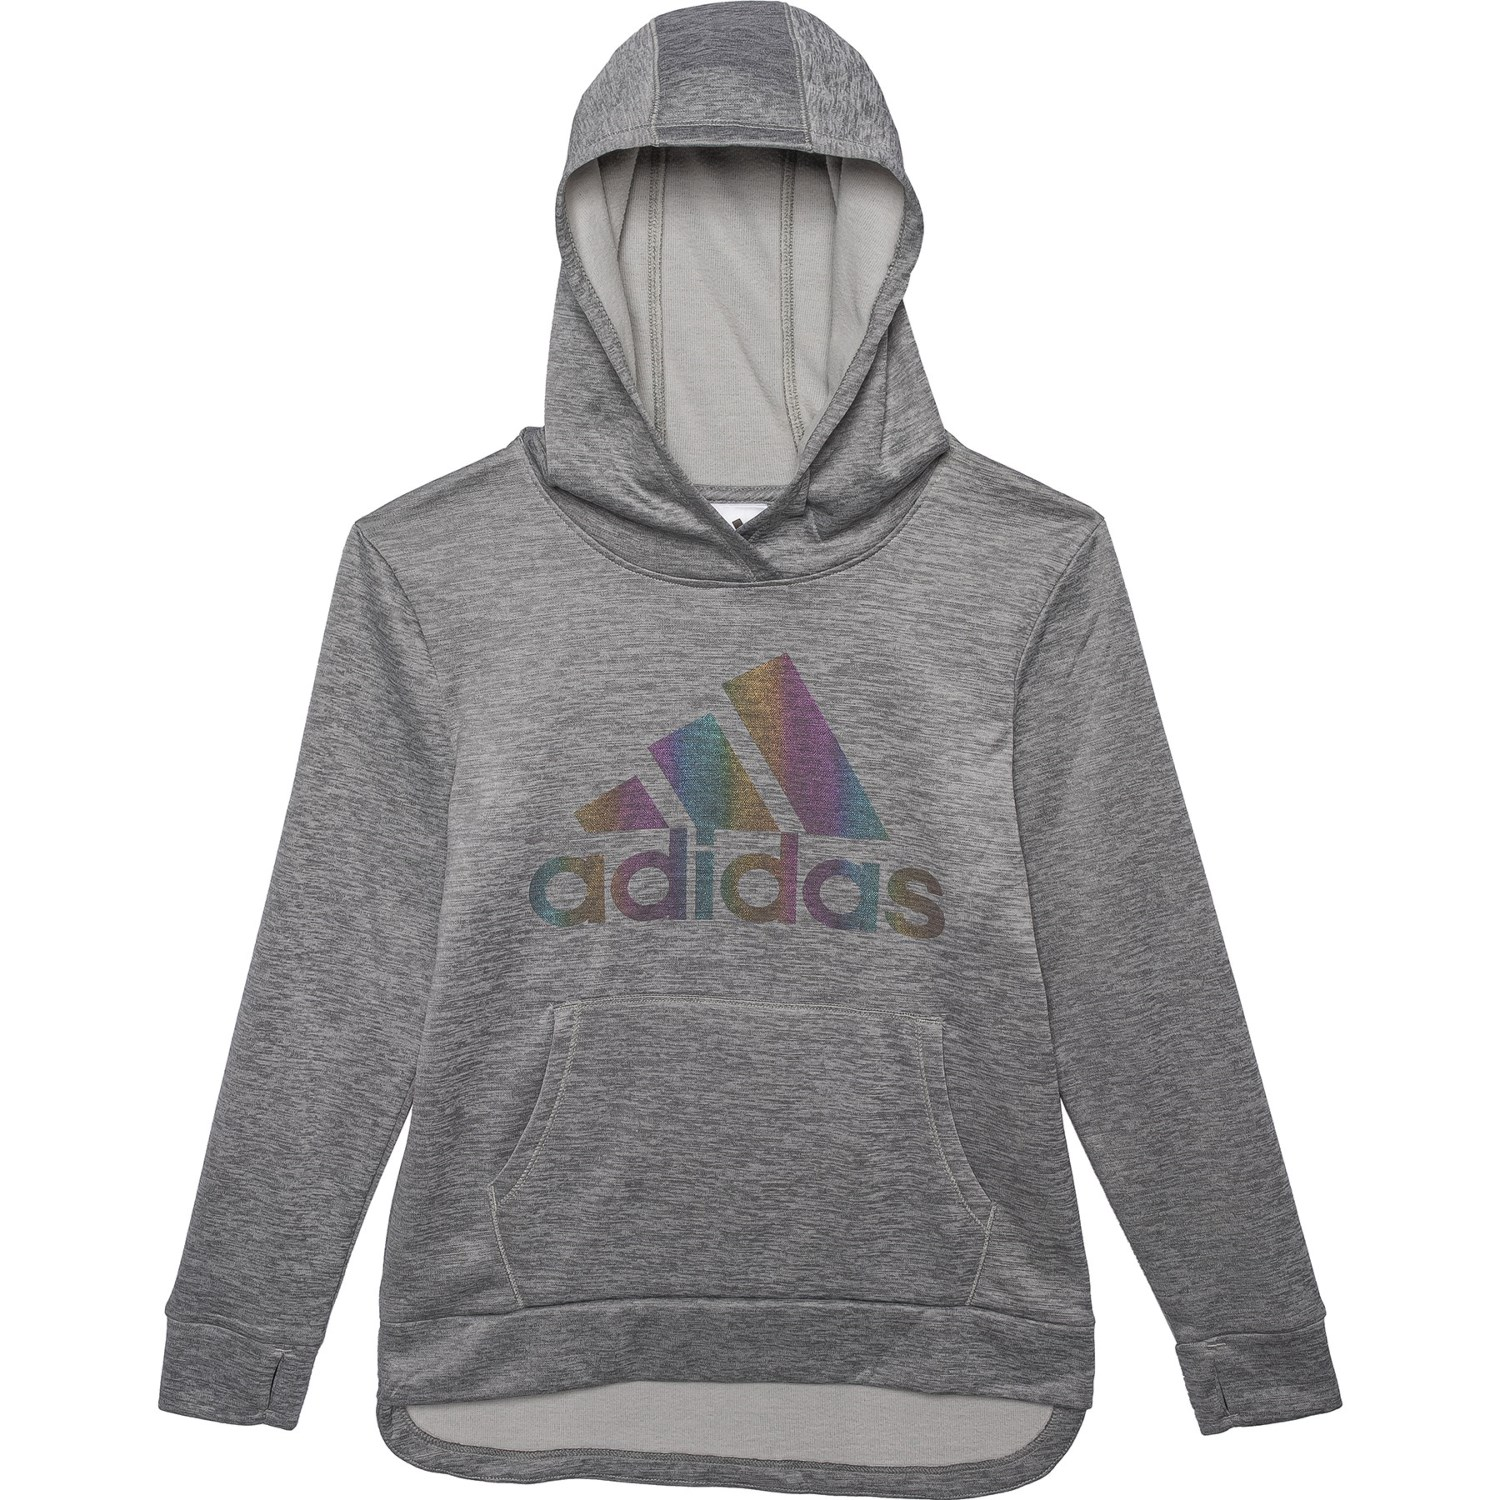 adidas Grey Heather Design Logo Hoodie (For Big Girls)